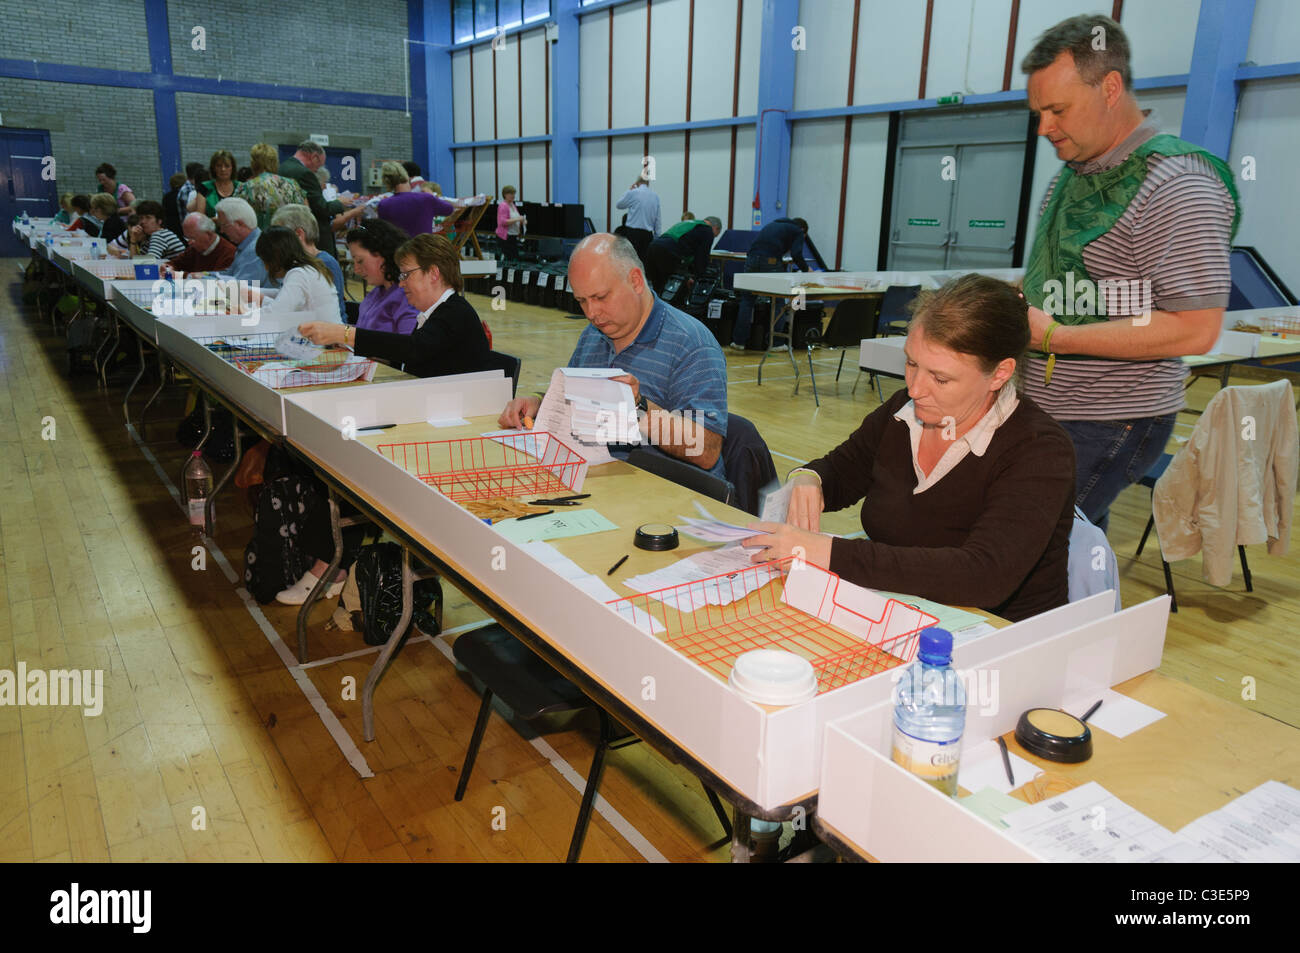 Counting votes at an election count centre - Stock Image